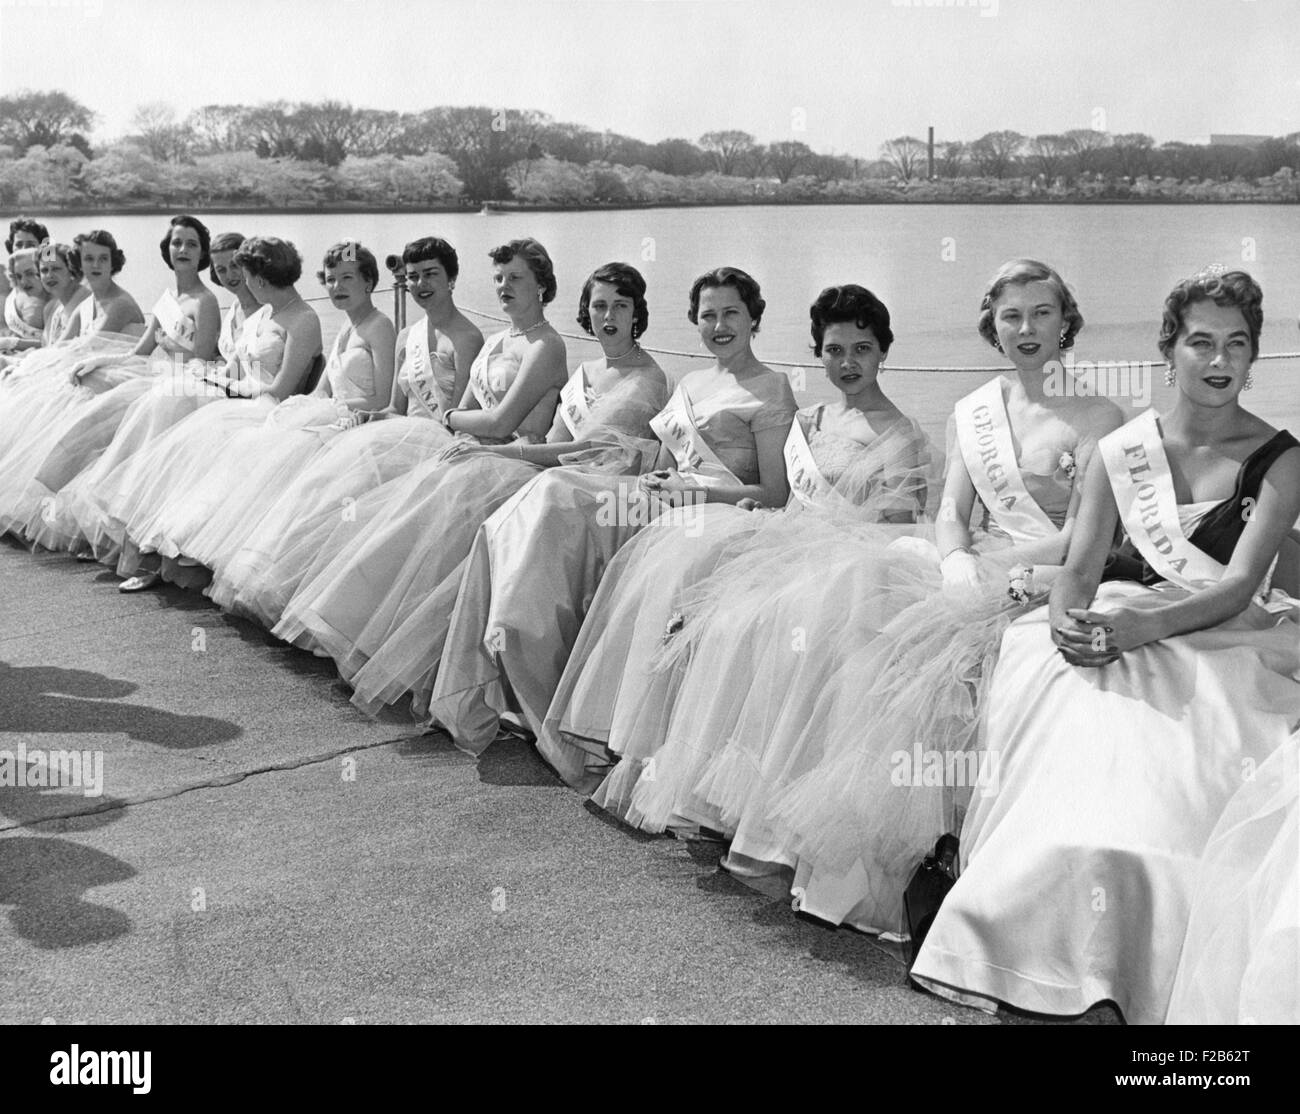 Cherry Blossom Festival Princesses wearing the ball gowns and their state sashes. April 2, 1955. They are young - Stock Image